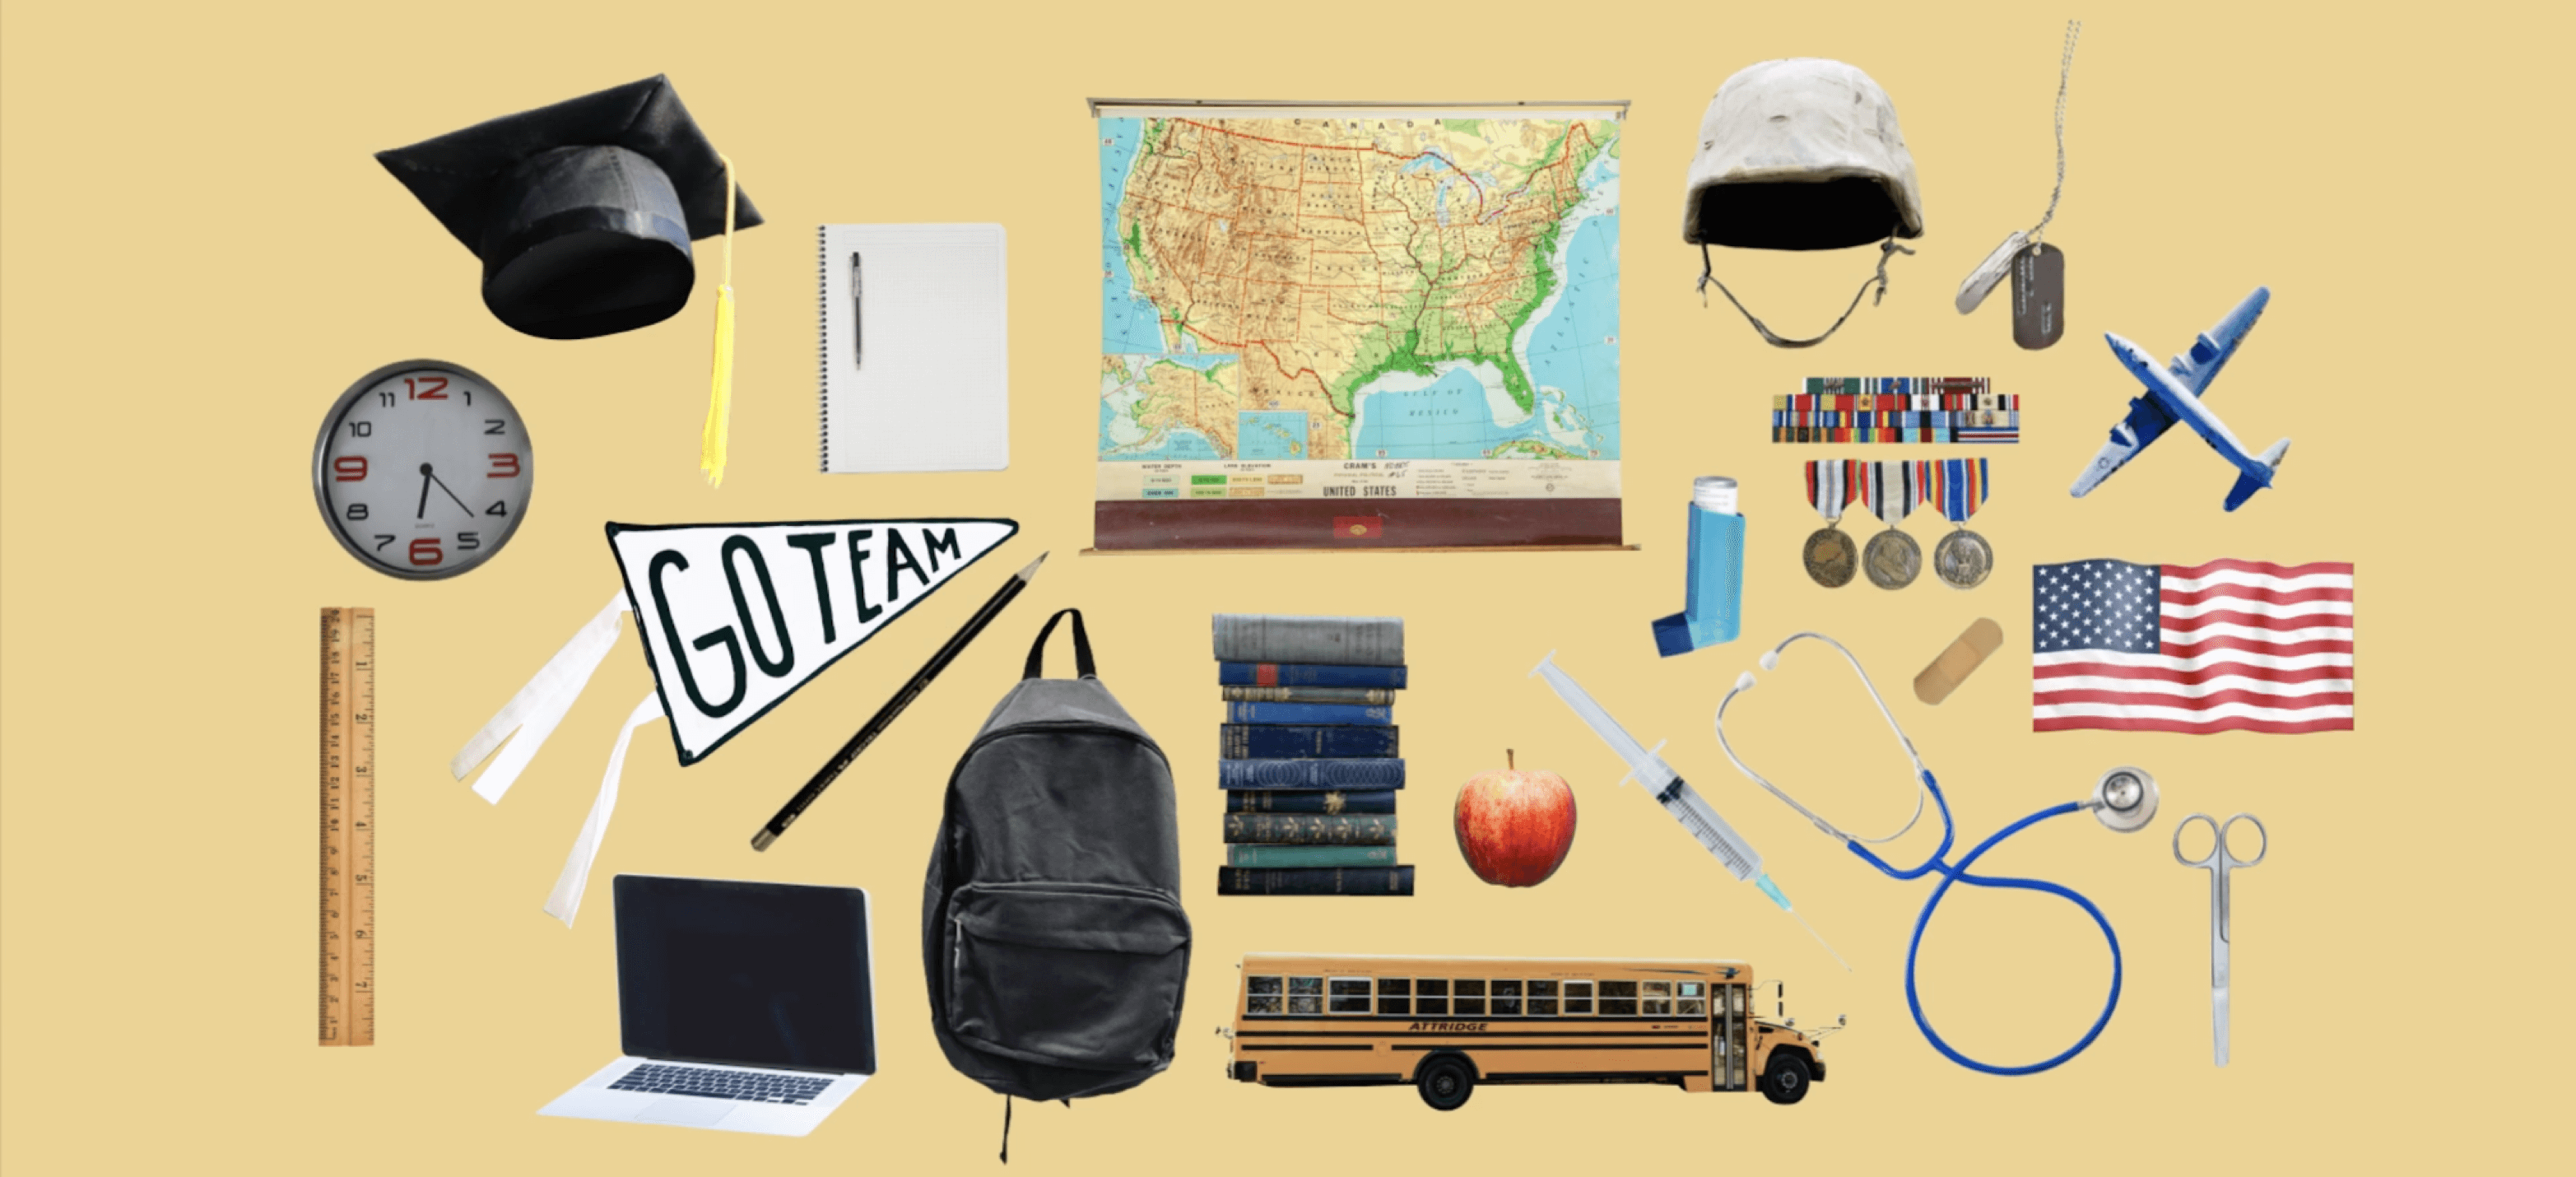 collage of school, military and medical equipment and supplies.